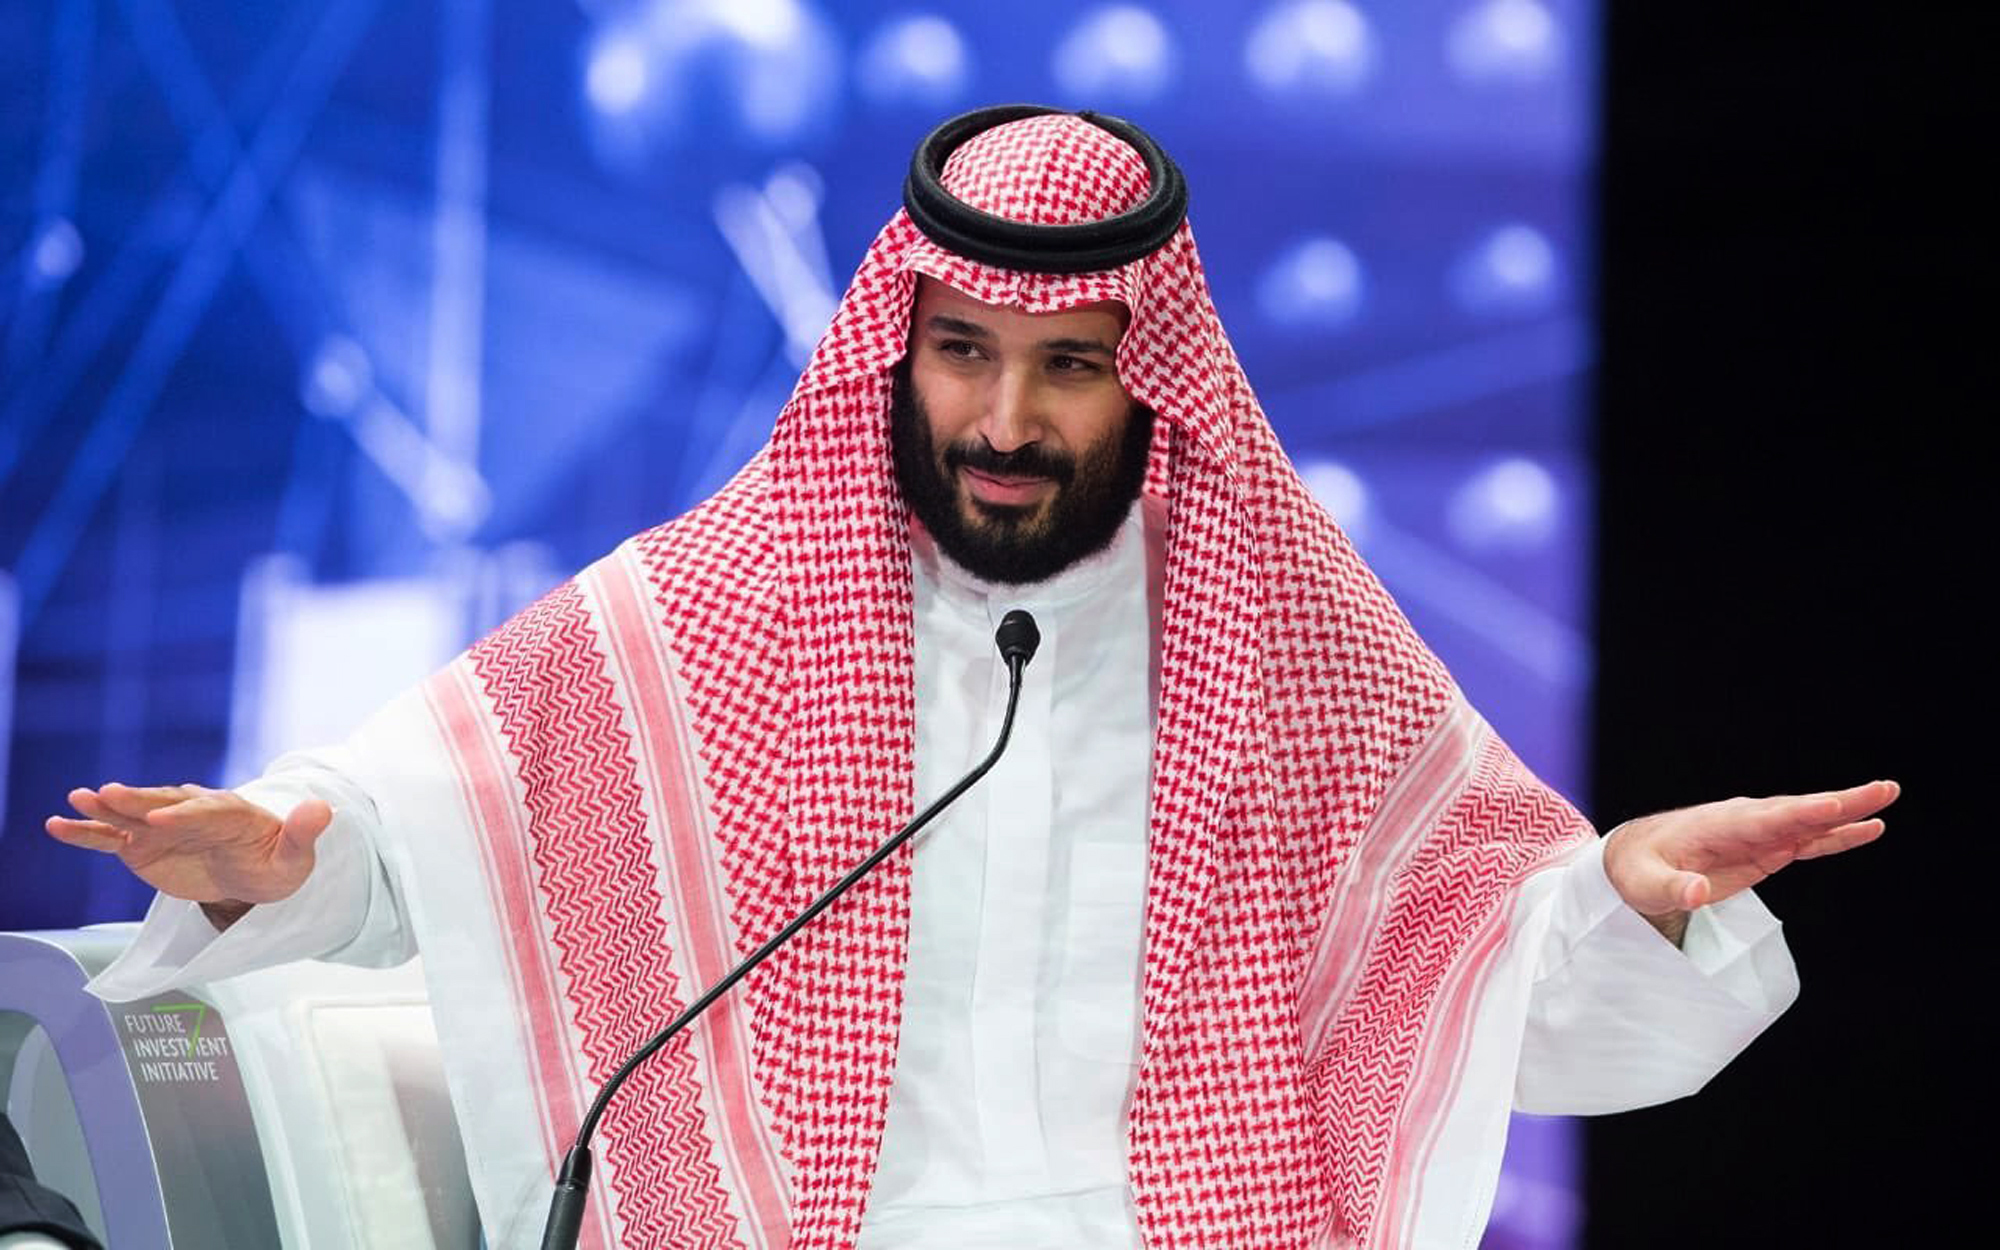 He described the murder of a journalist as a holy crown prince as a